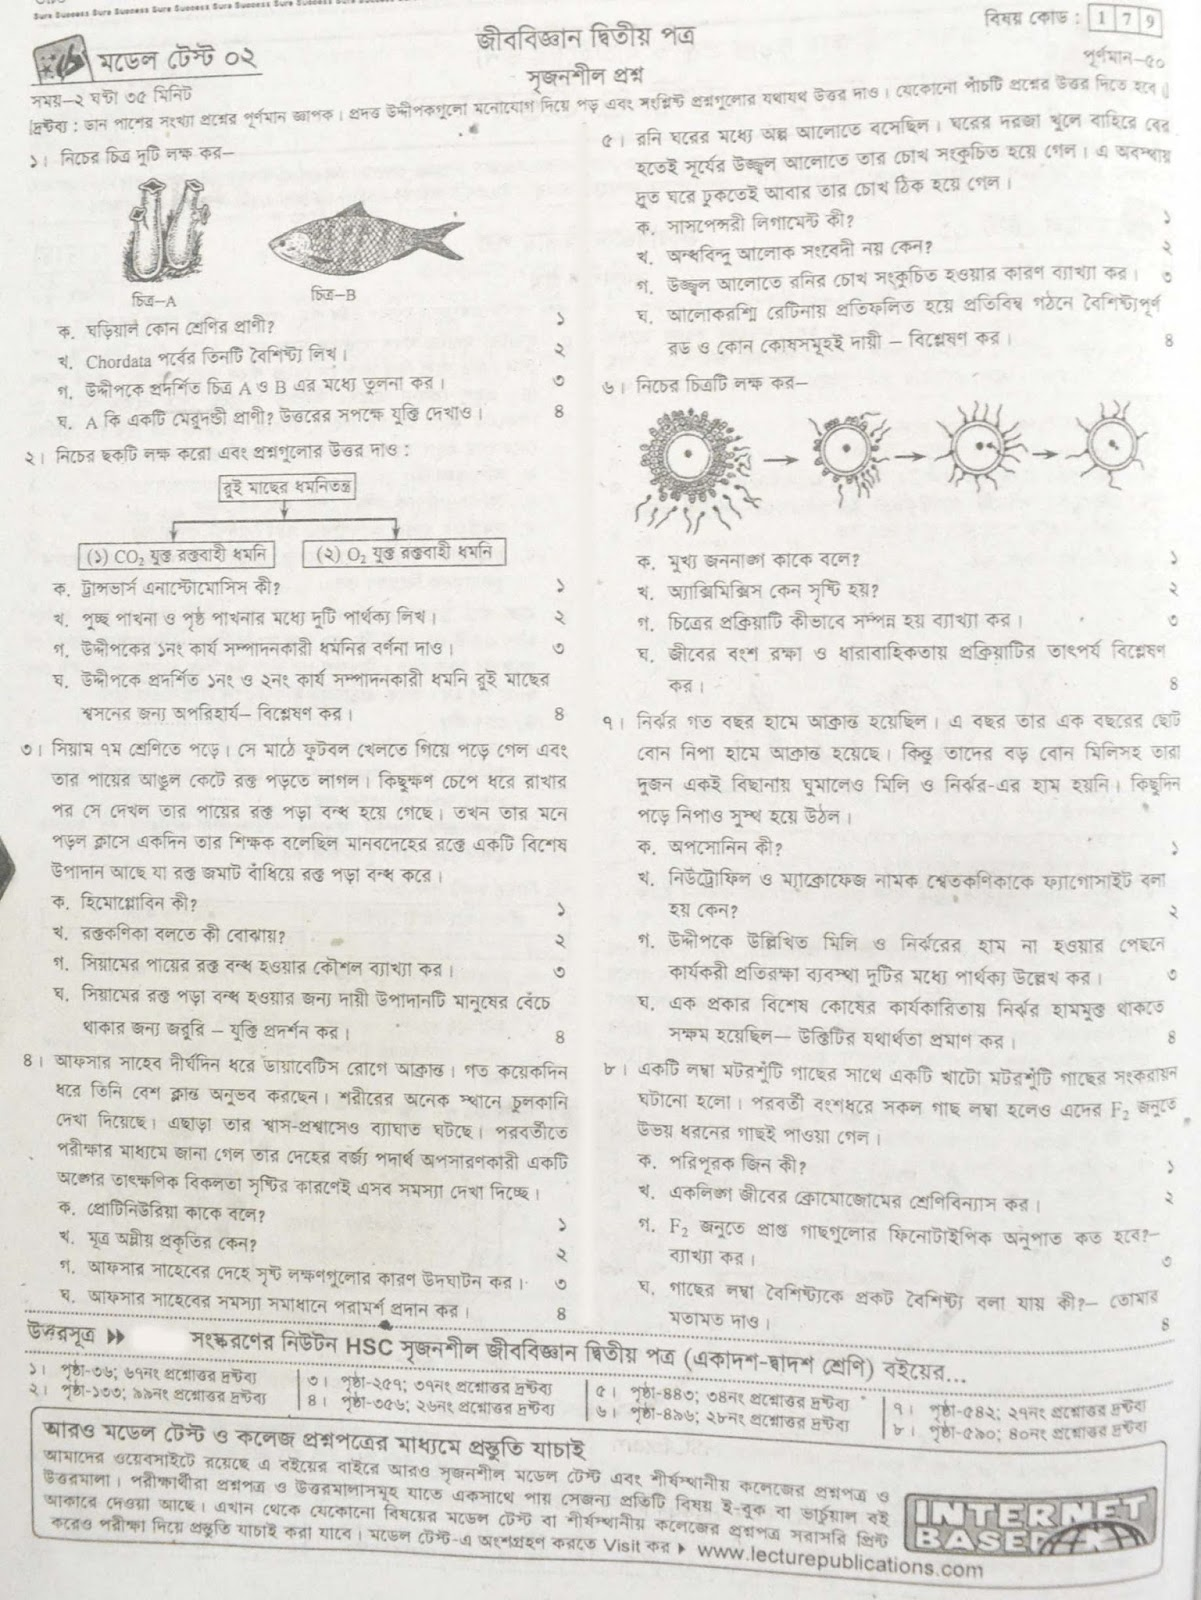 hsc Biology 2nd Paper suggestion, exam question paper, model question, mcq question, question pattern, preparation for dhaka board, all boards